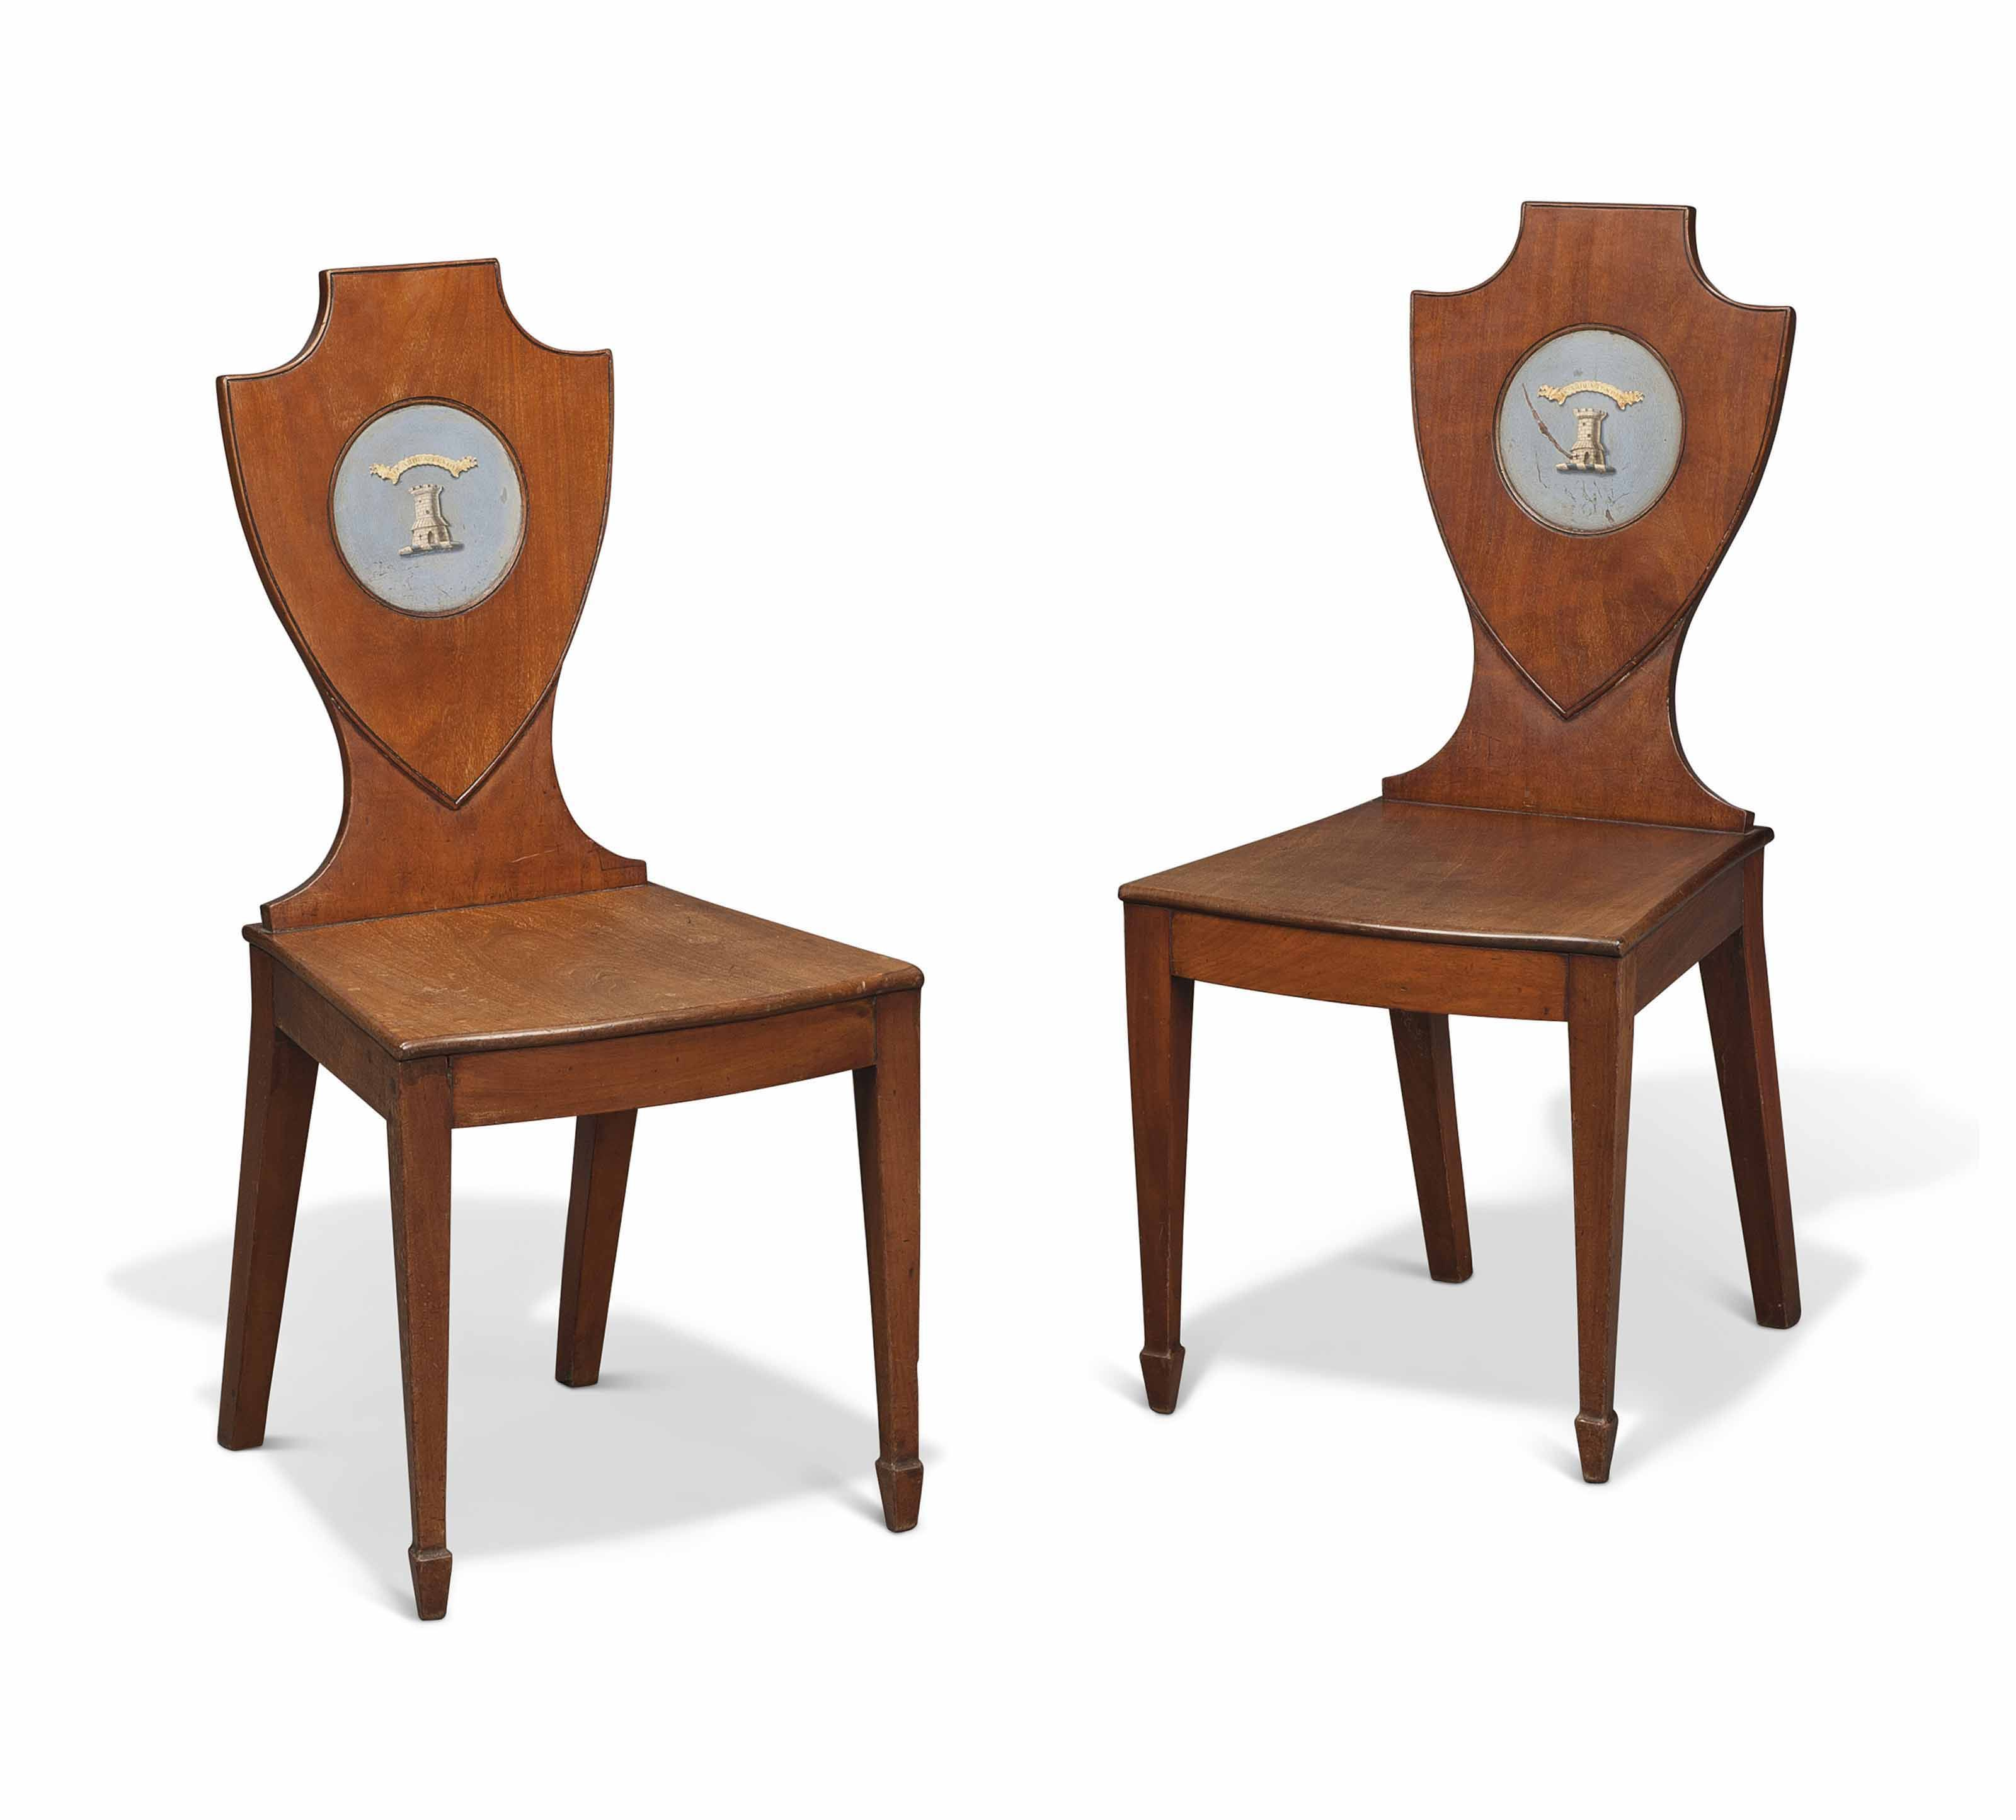 c1820 A PAIR OF REGENCY MAHOGANY AND POLYCHROMEDECORATED